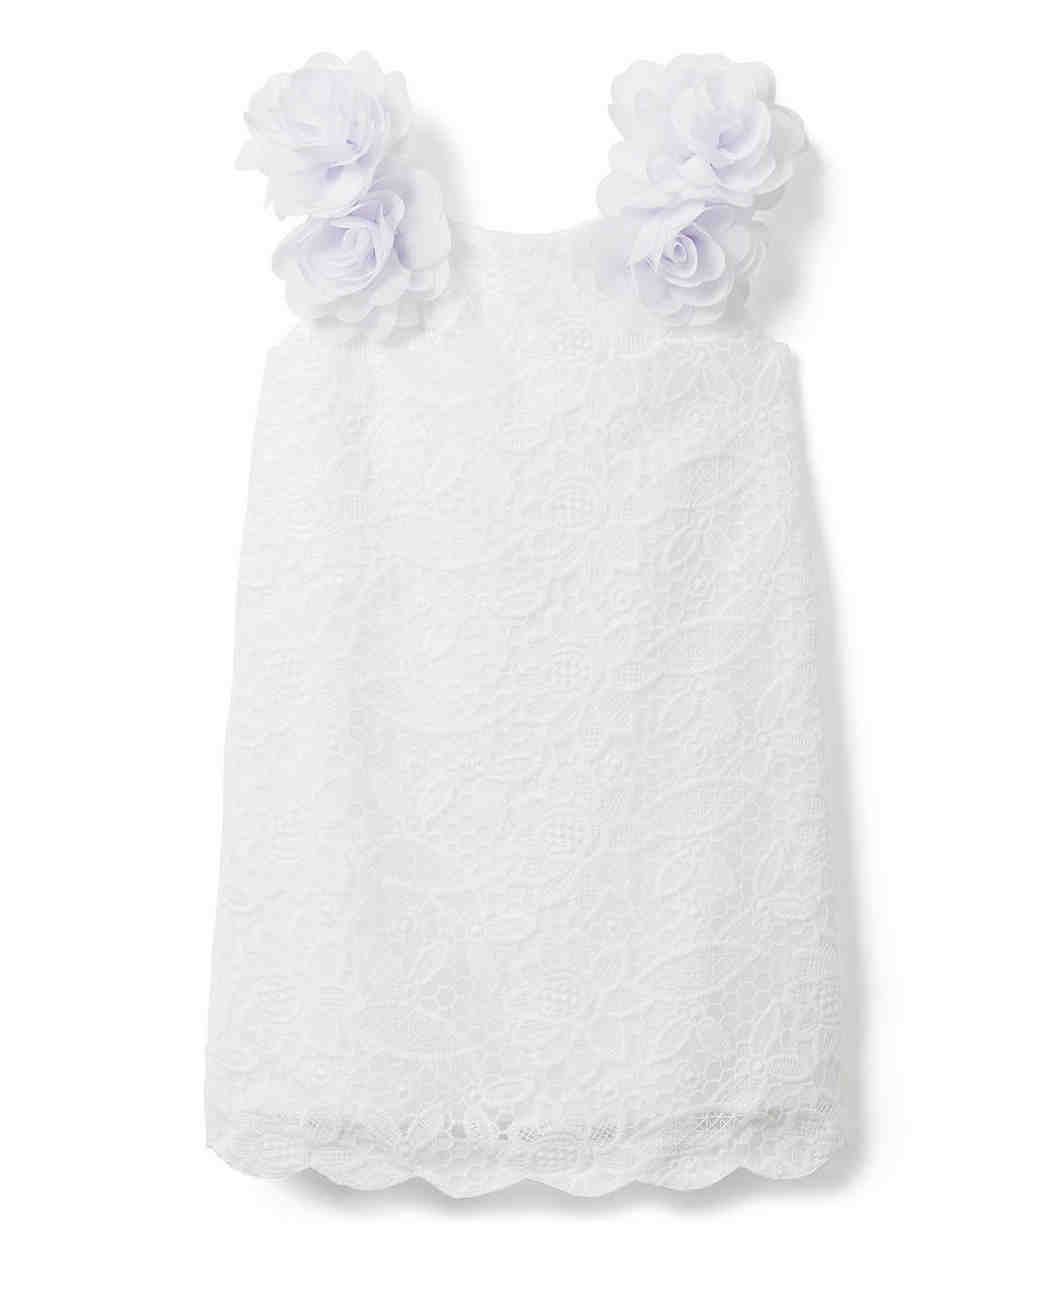 summer flower girl outfit white dress